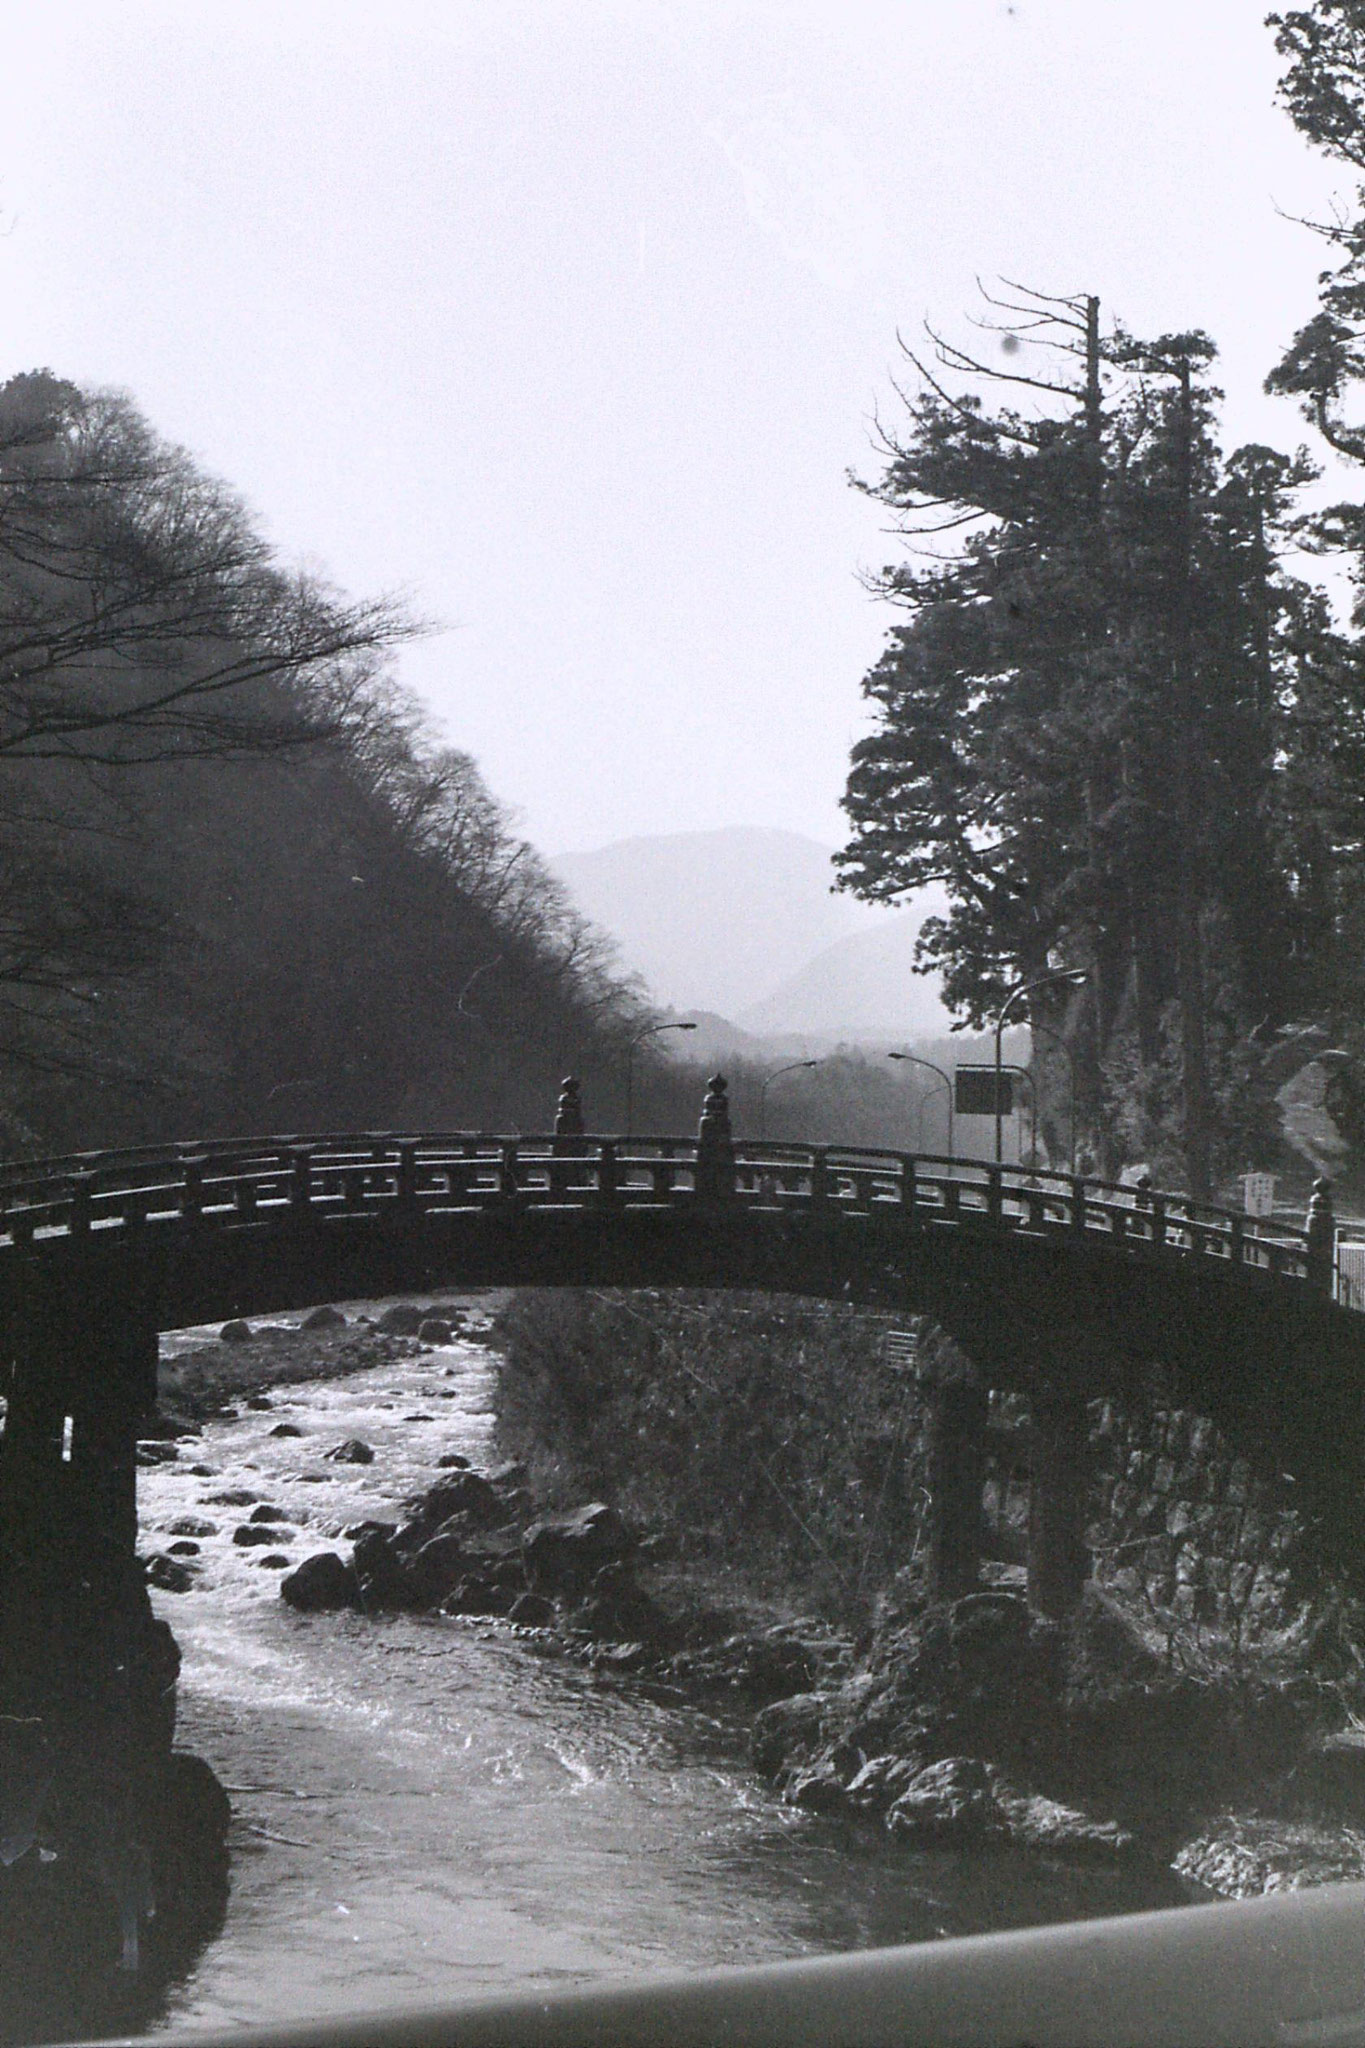 31/1/1989: 9: sacred bridge